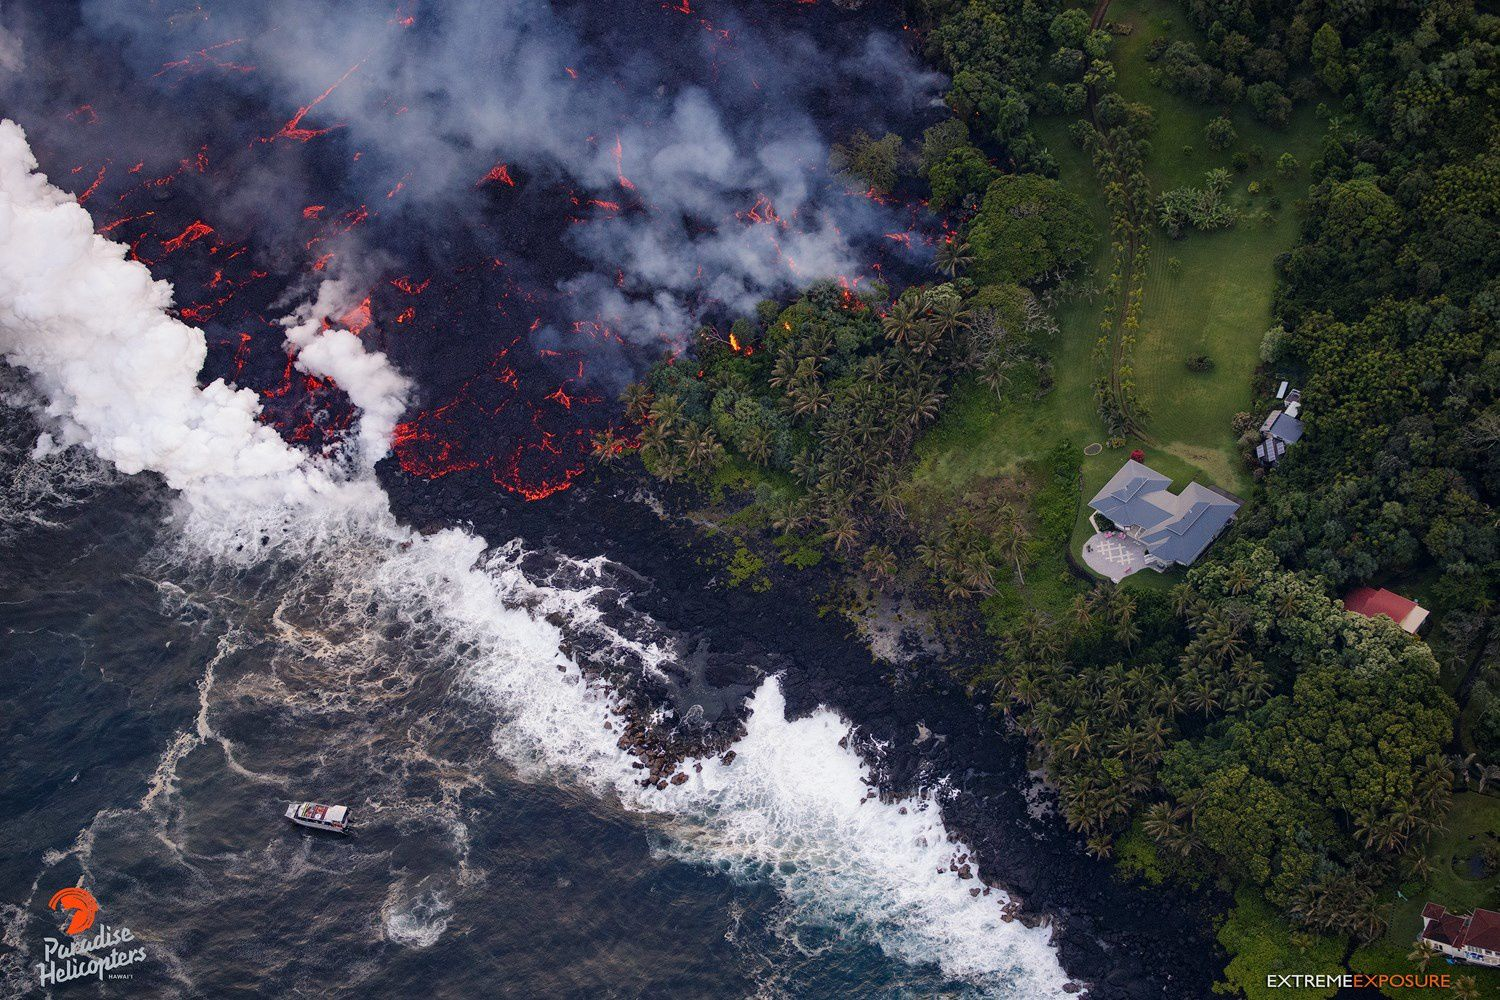 Kilauea East rift zone: 20.05.2018 / 5.45am - entry of lava at sea; note on the right, a property, and on the left, the presence of an observation boat - photo Bruce Omori / Paradise helicopters